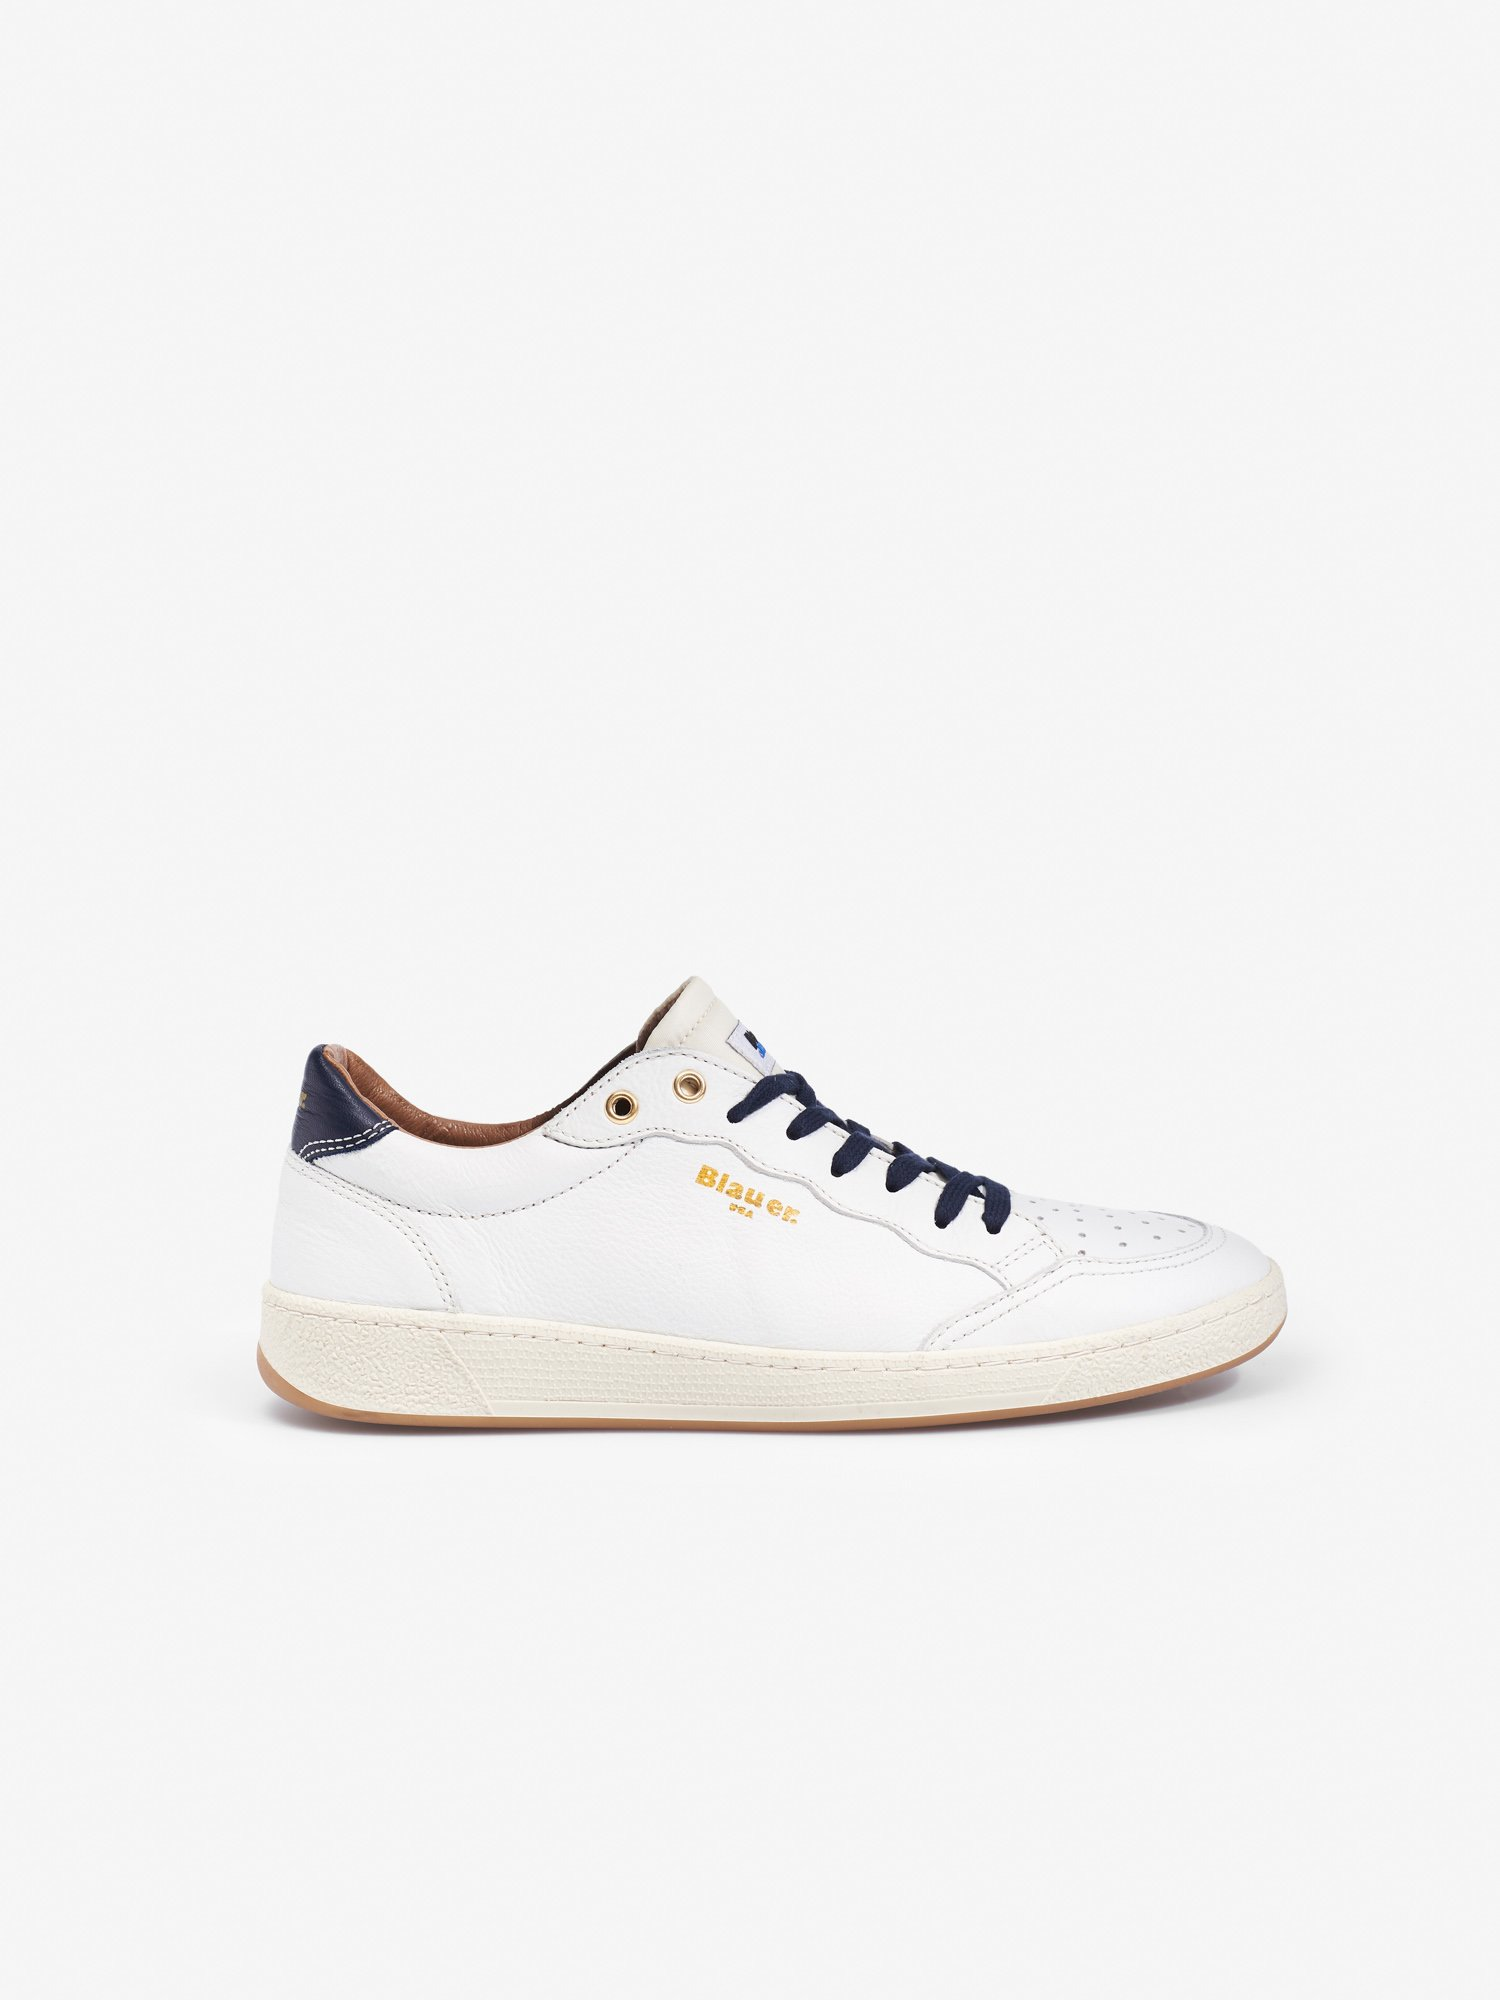 SNEAKER RETRO MURRAY - Blauer